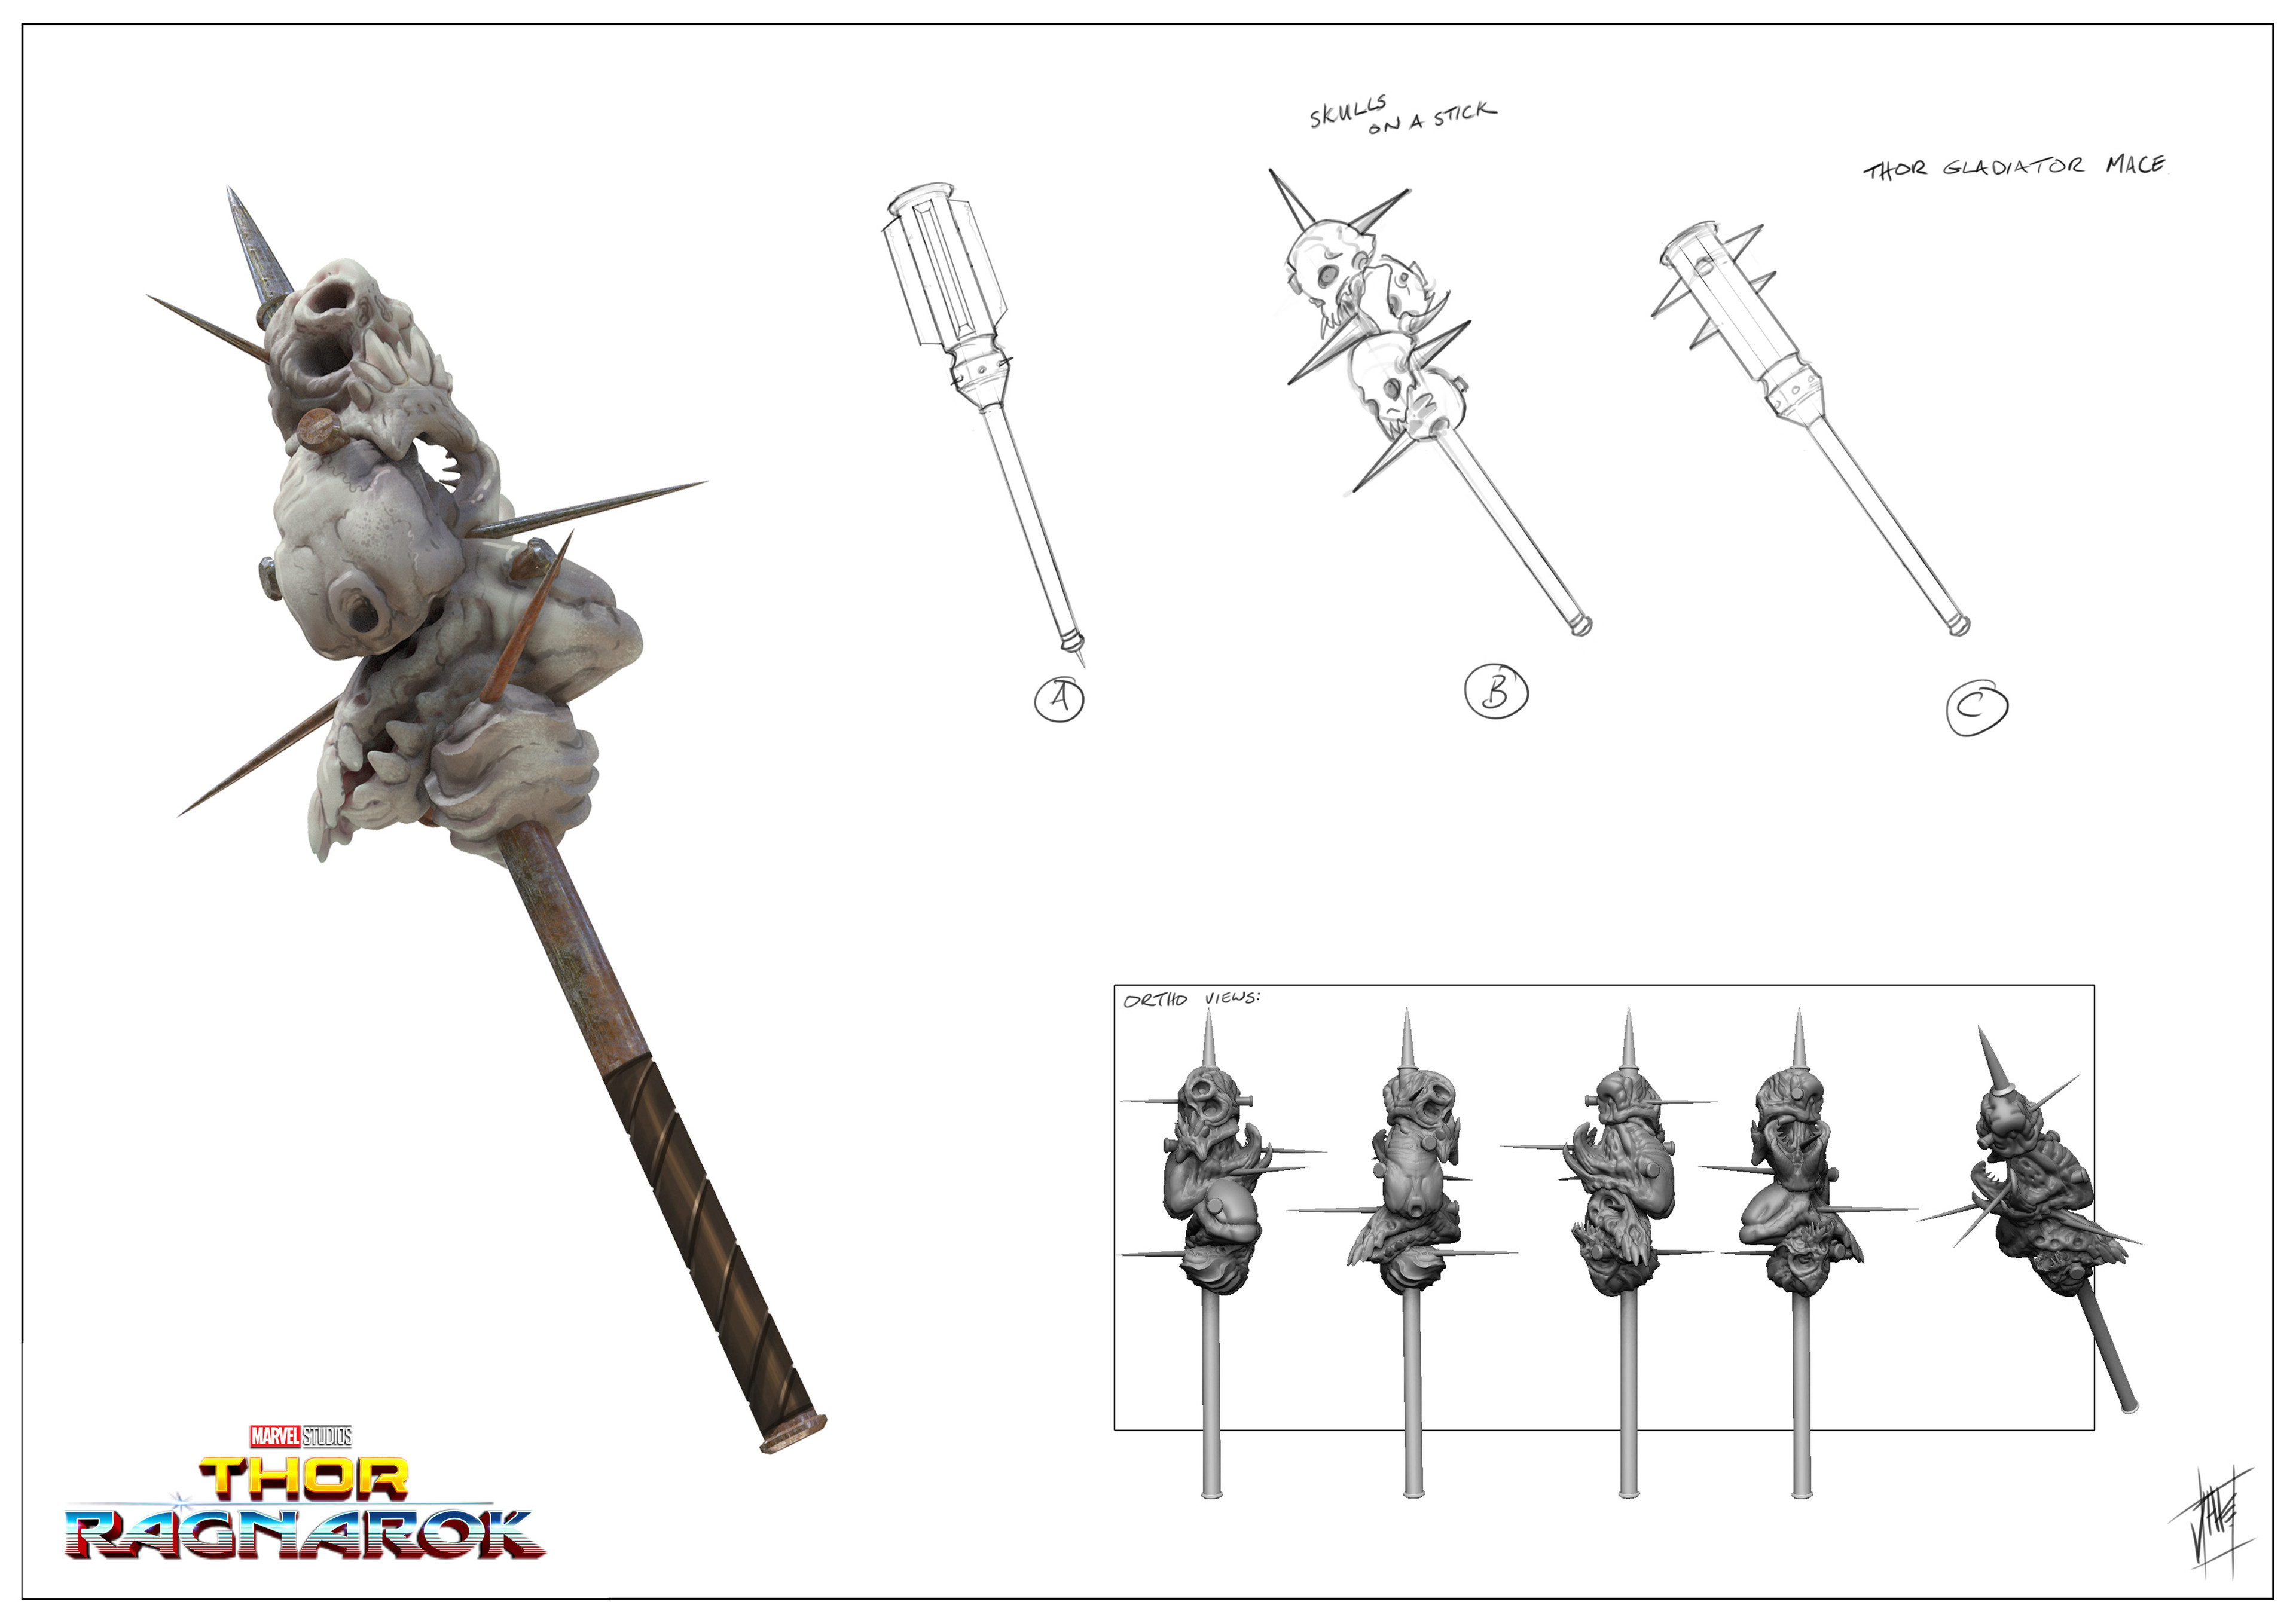 Sakar - rejected  Hulk arena weapon.